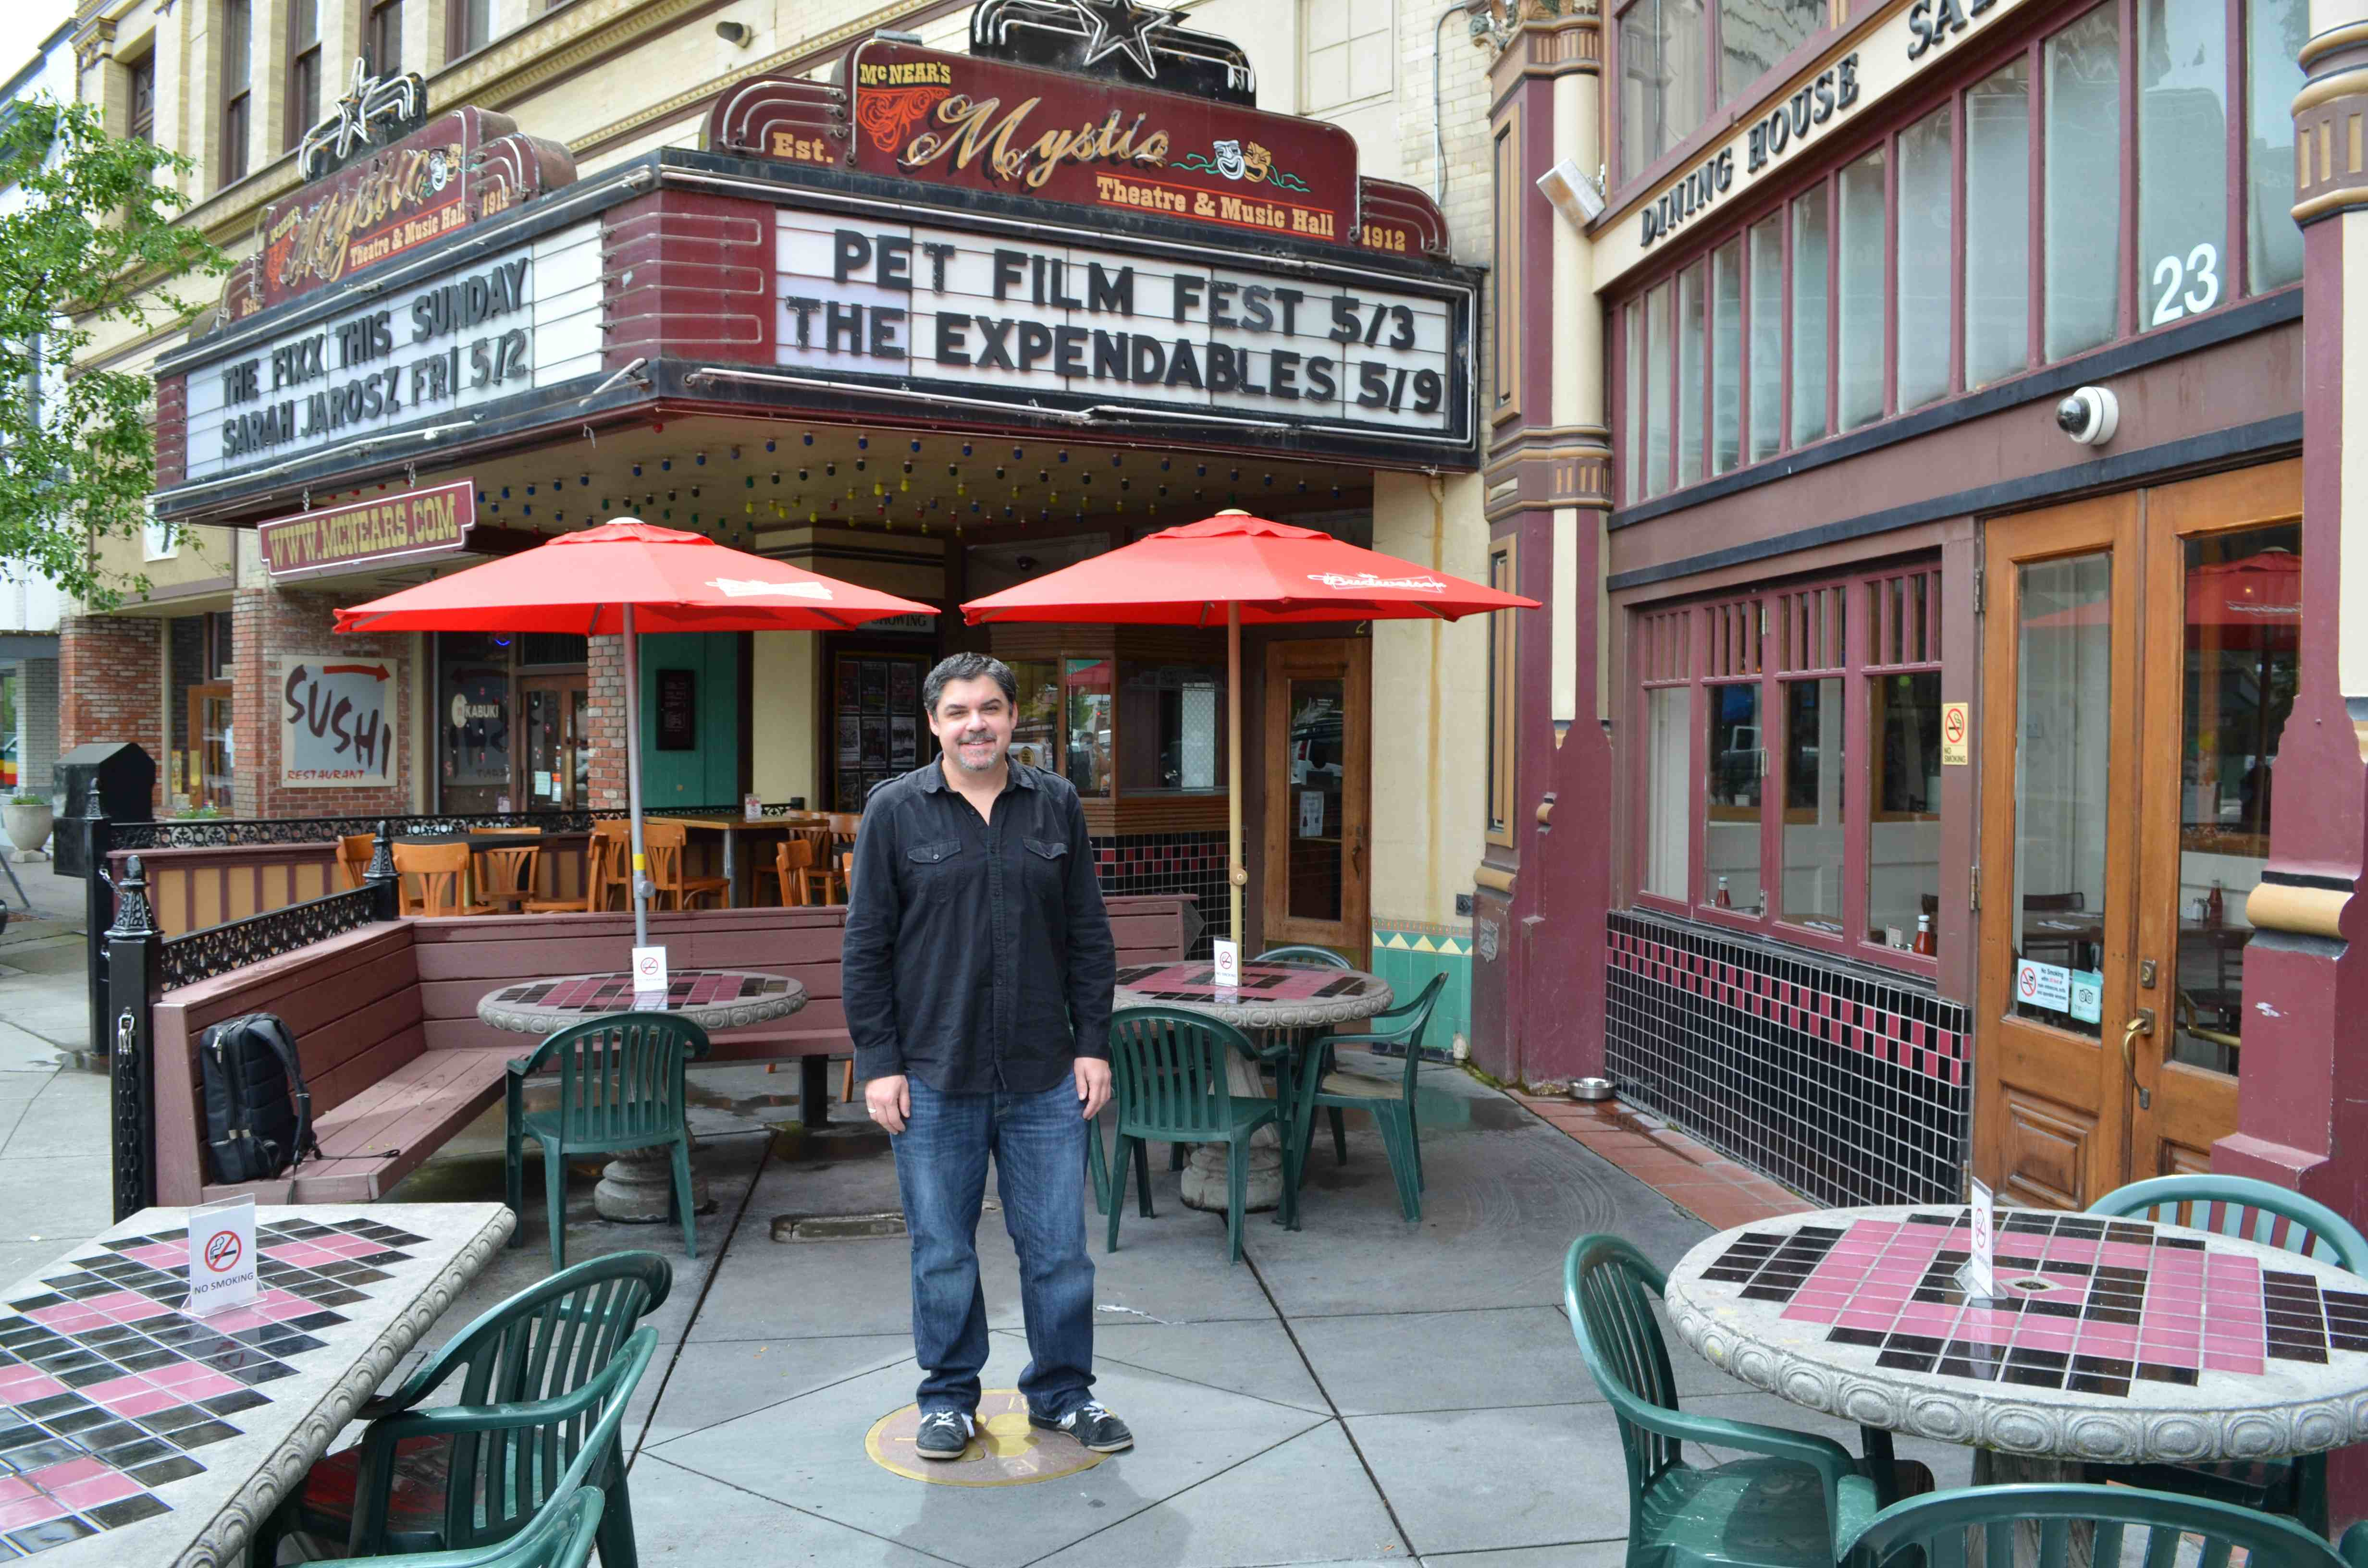 SRJC instructor MIke Traina poses in front of the Mystic Theatre in Petaluma.